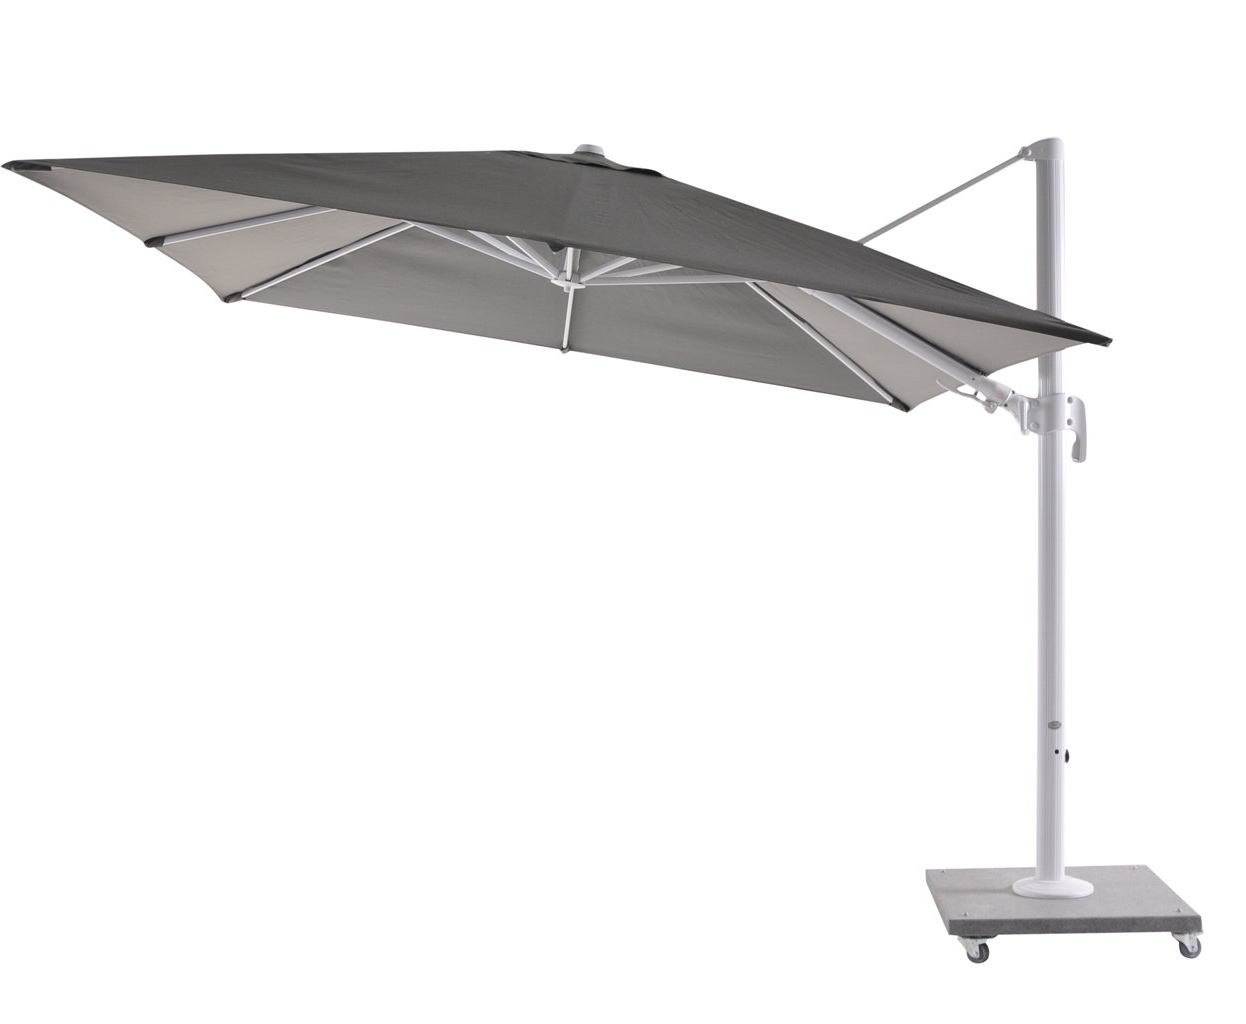 Block 10' Square Cantilever Umbrella Throughout Well Known Alyssa Cantilever Umbrellas (View 5 of 20)